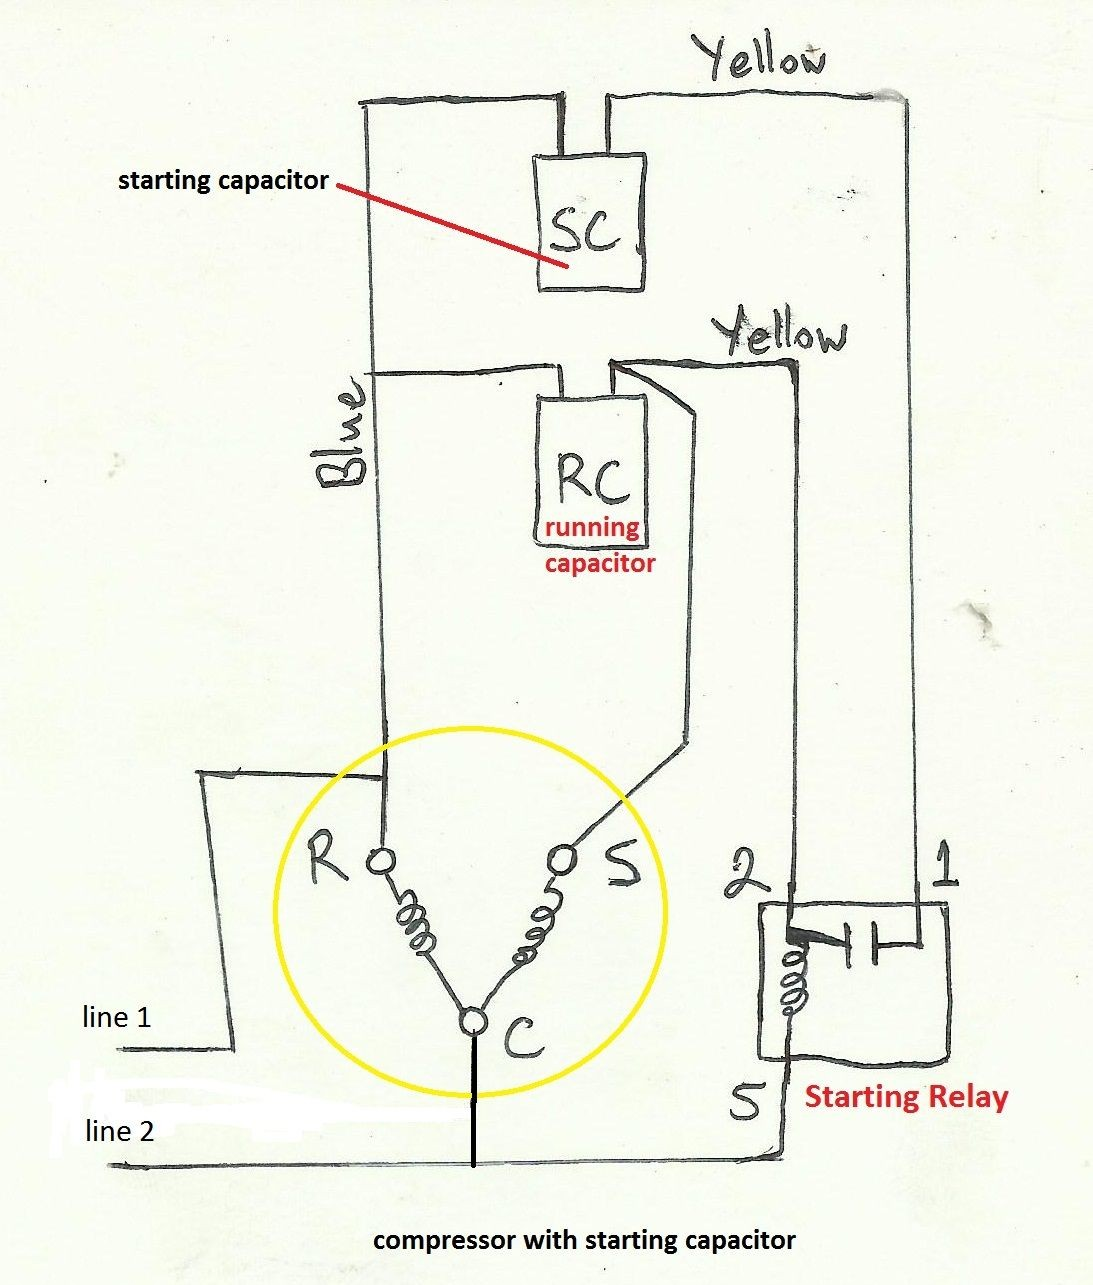 Air pressor Capacitor Wiring Diagram Before you call a AC repair man visit my blog for some tips on how to save thousands in ac repairs